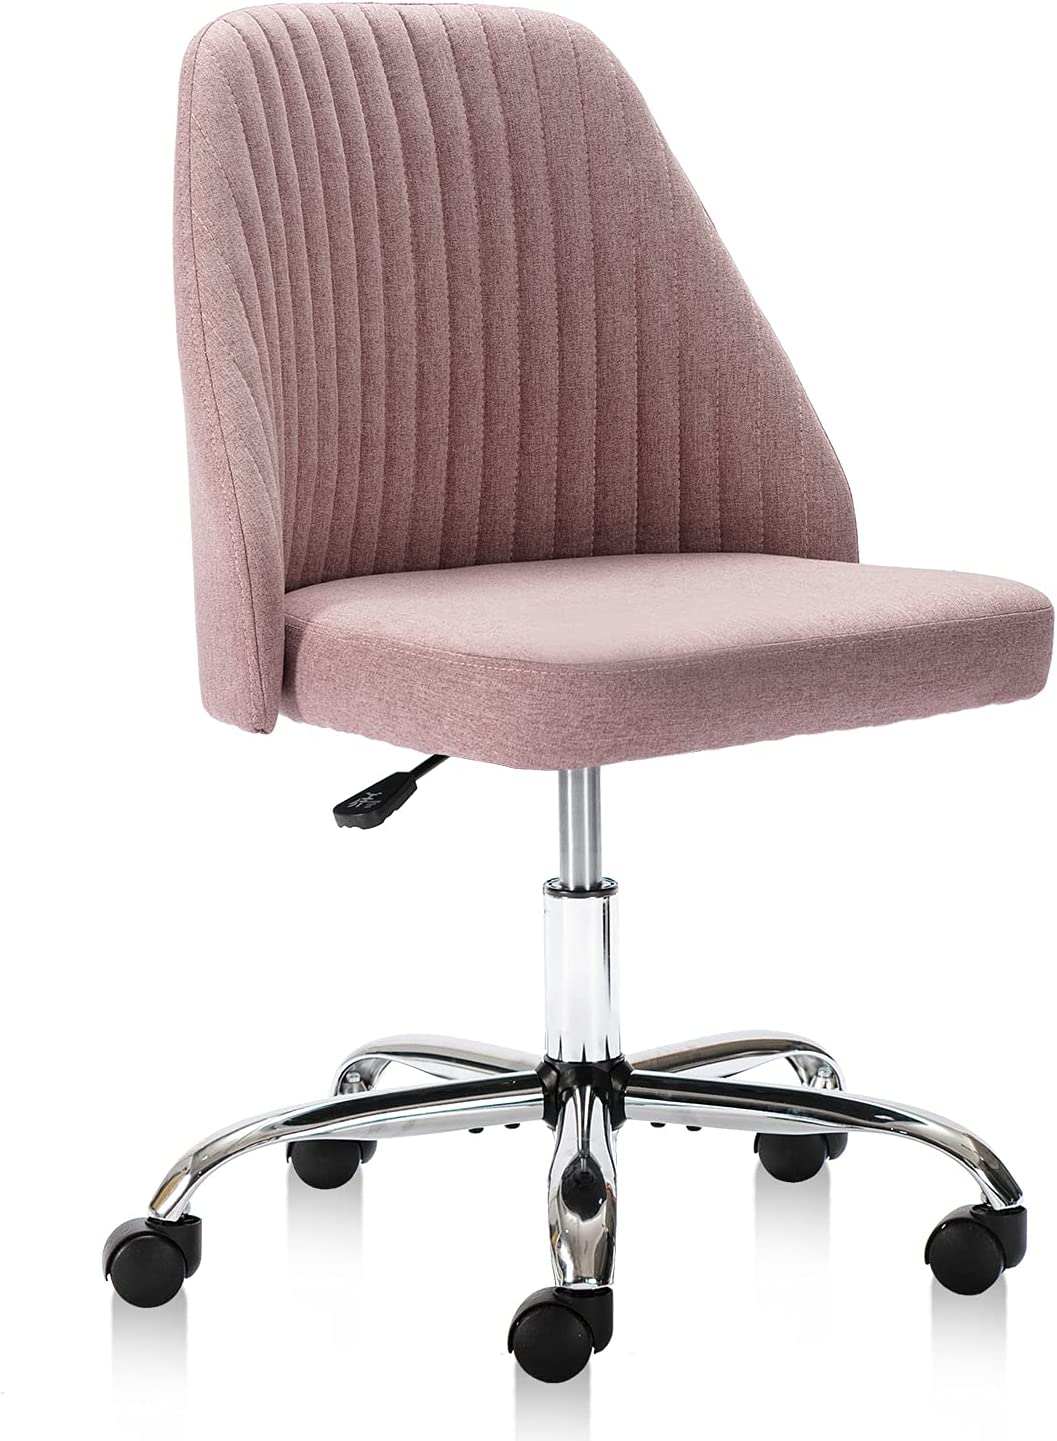 Home Office Chair, Modern Twill Fabric Chair Adjustable Desk Chair Mid-Back Task Chair Ergonomic Executive Chair-Pink